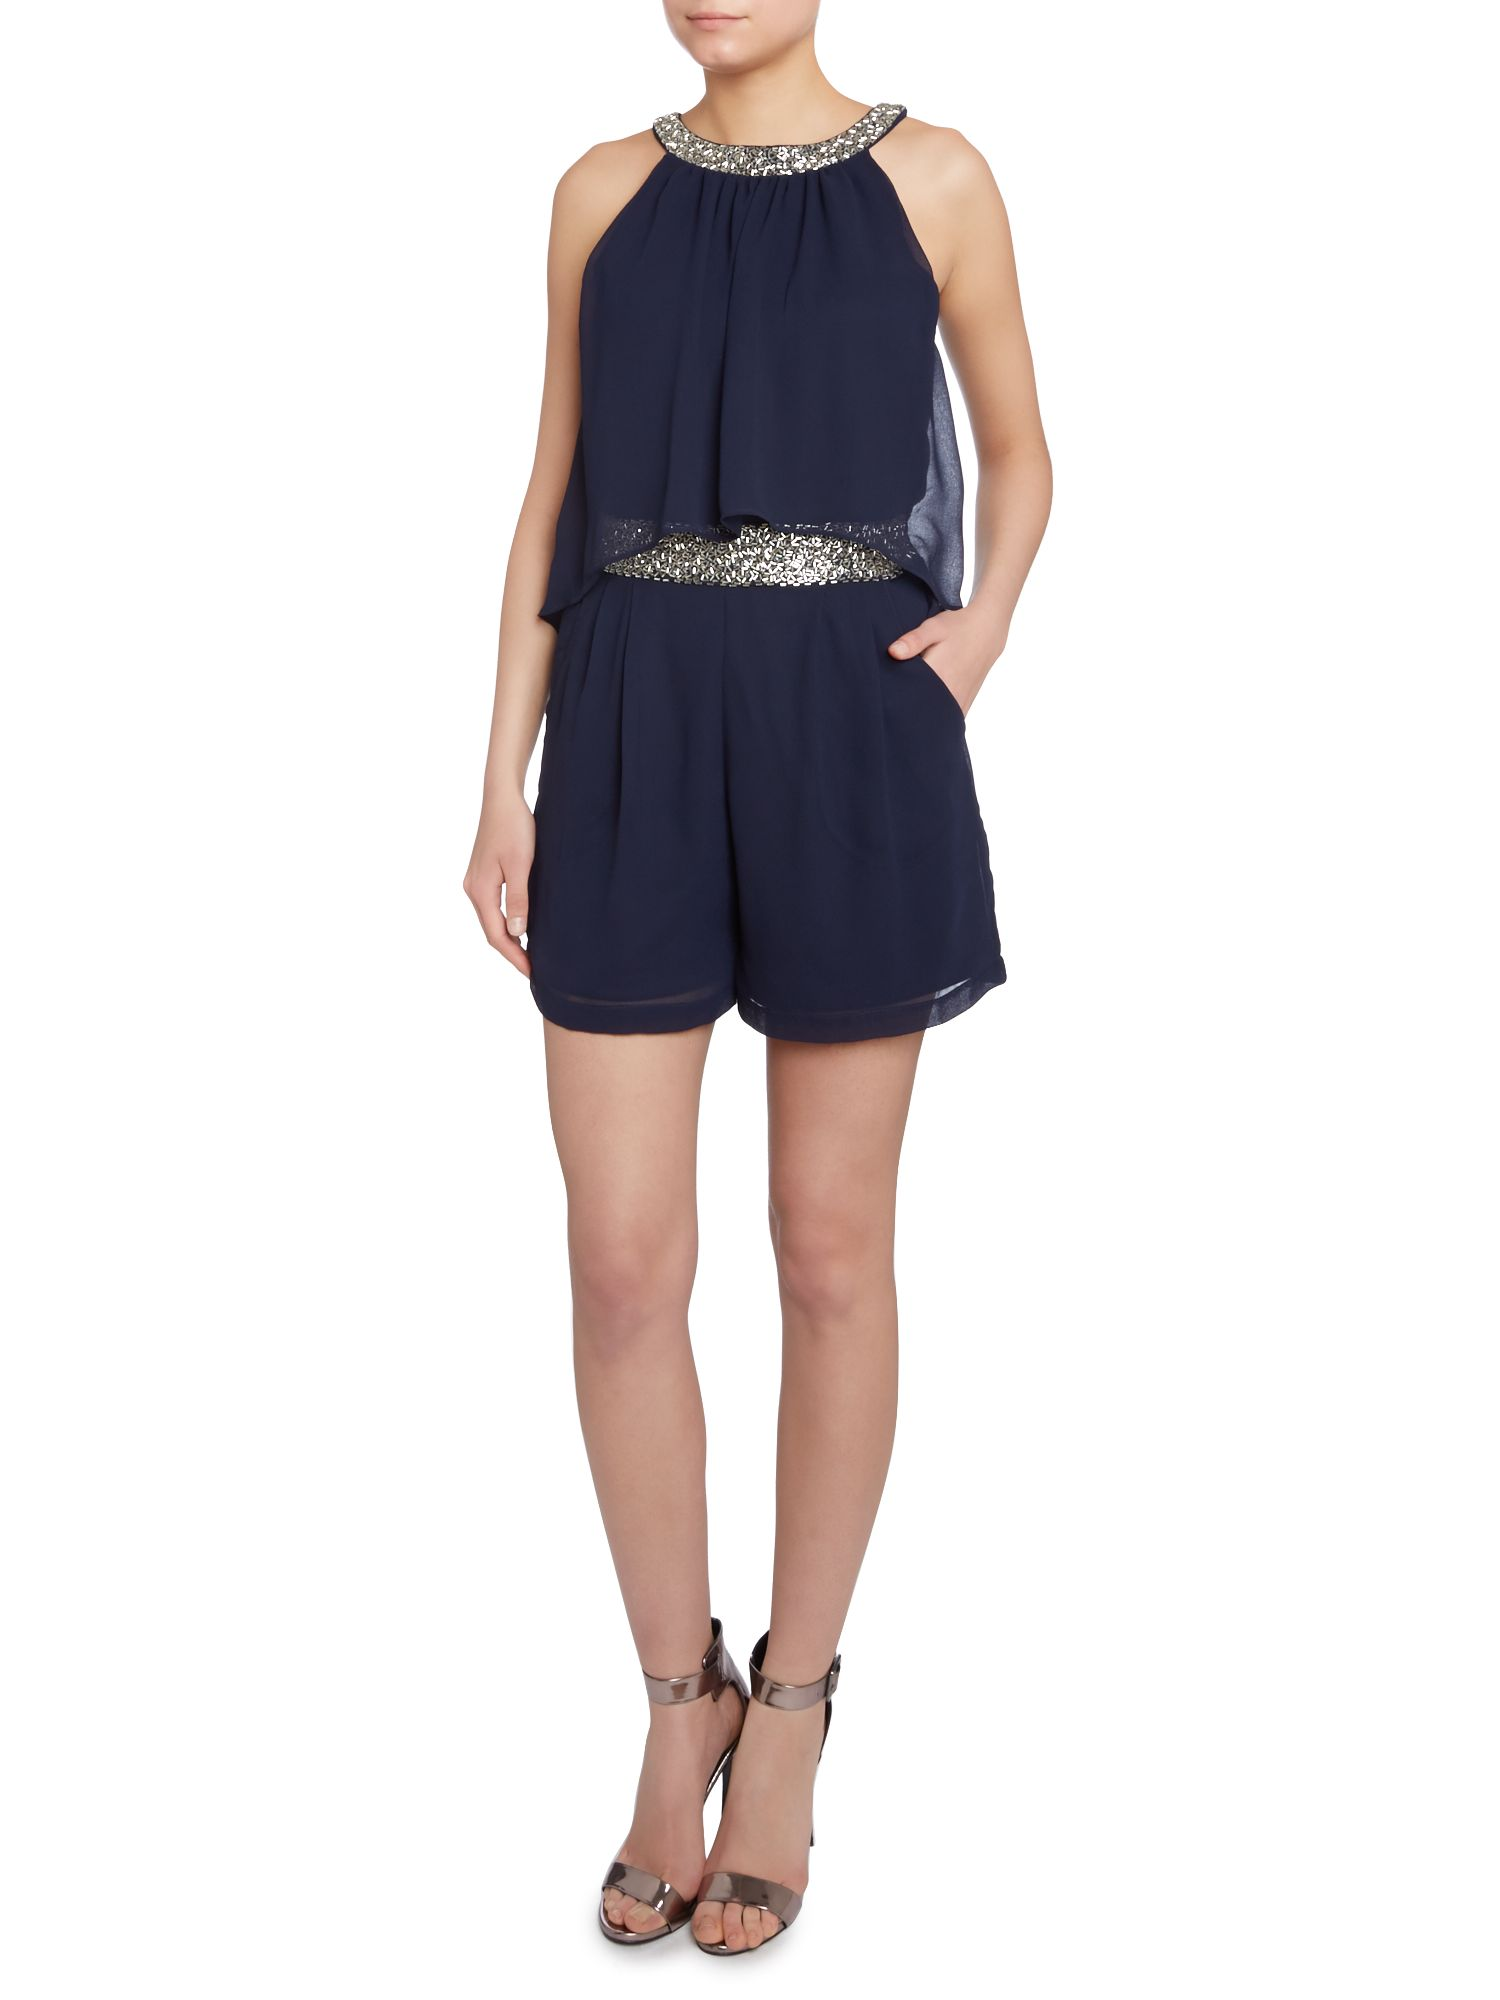 Chiffon layers embellished neck playsuit